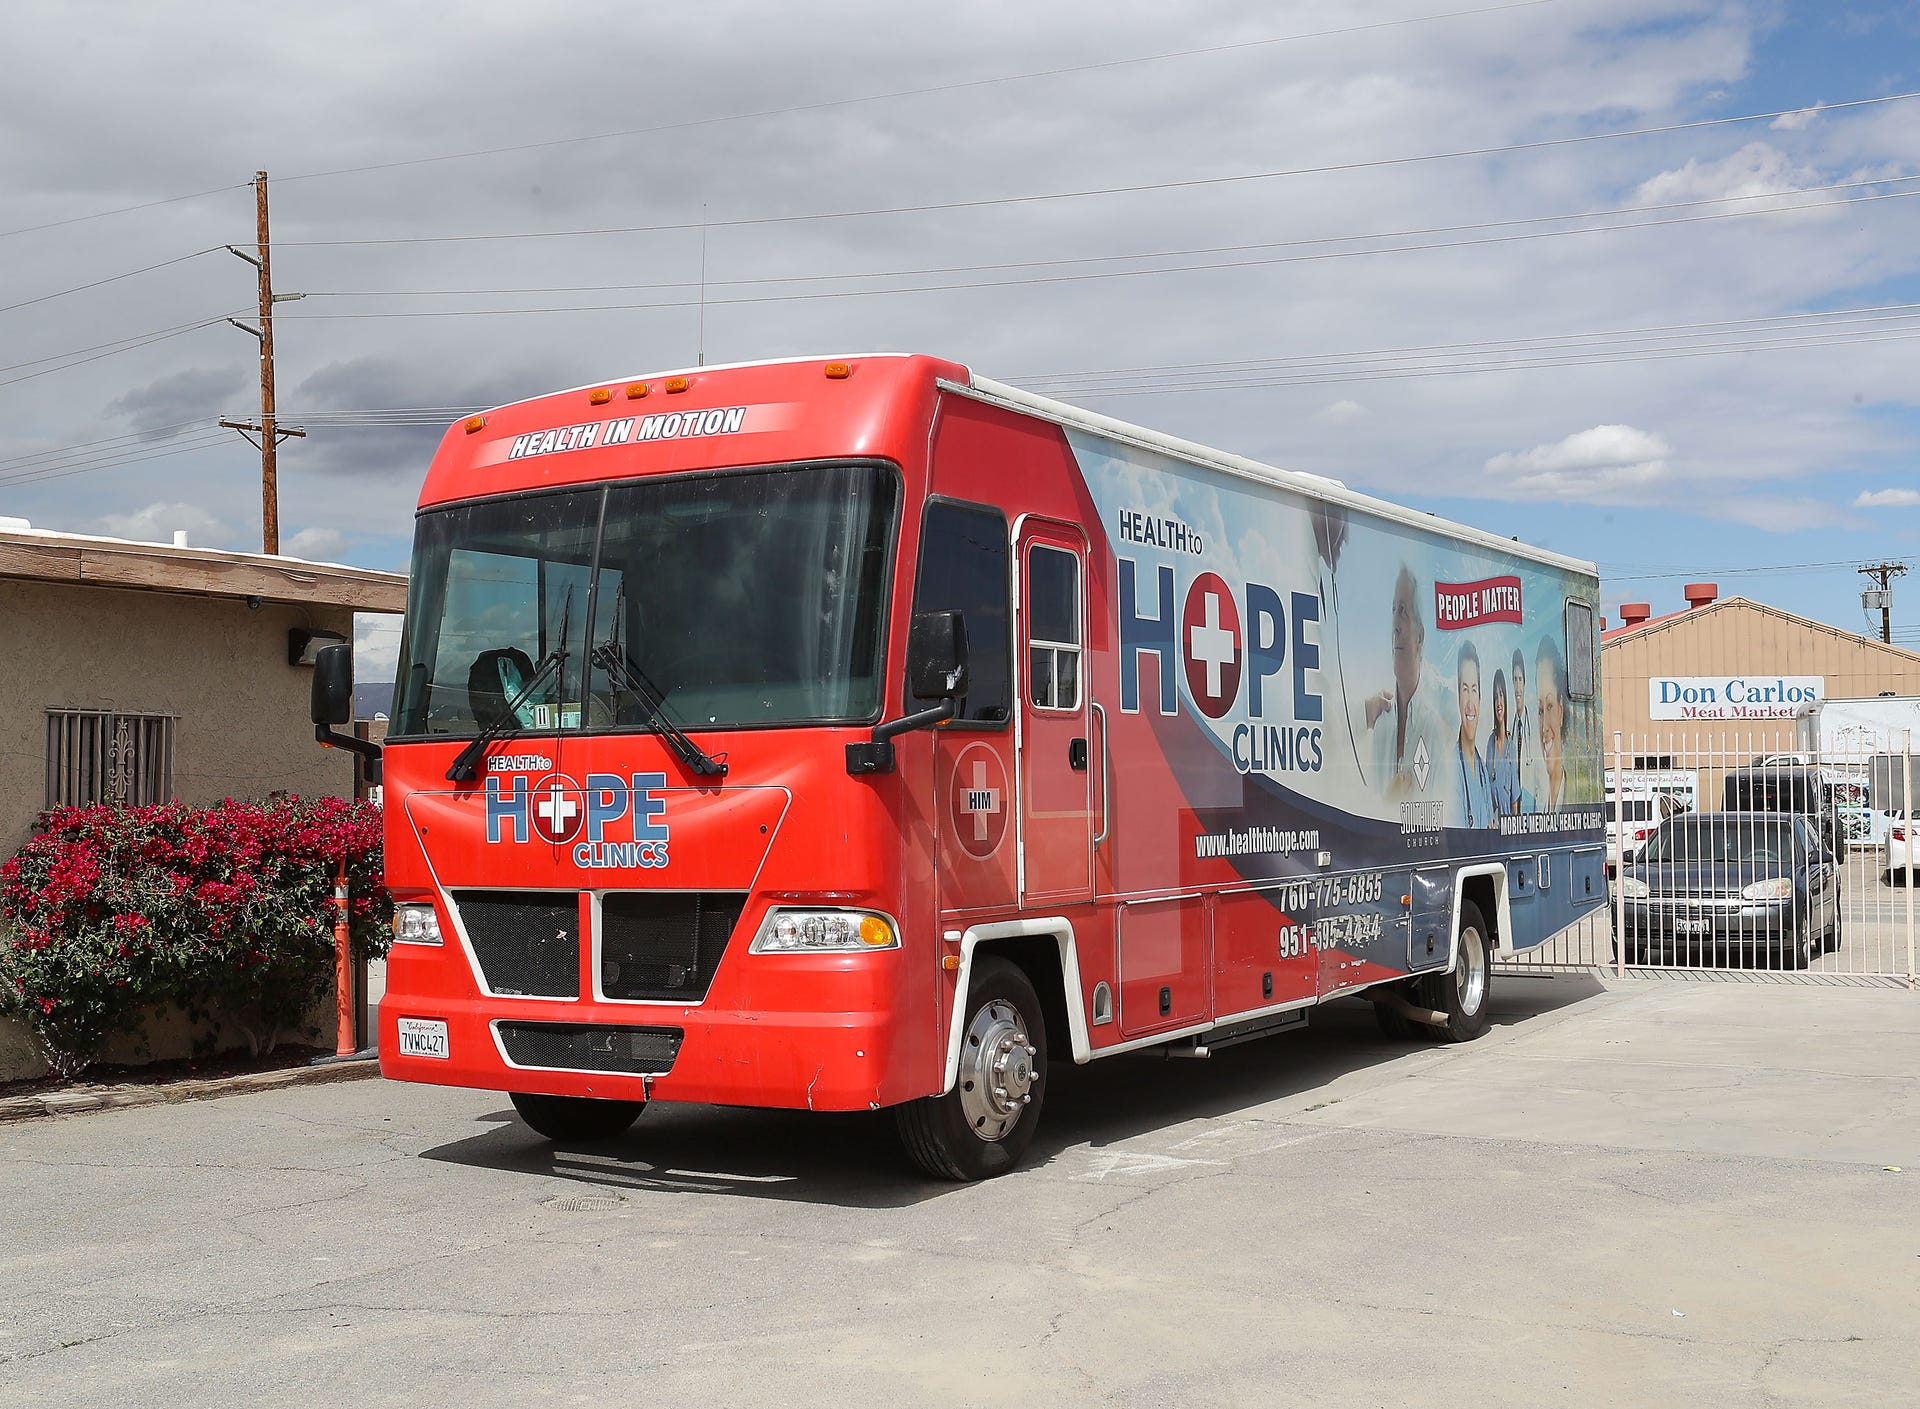 Health to Hope ceases operation